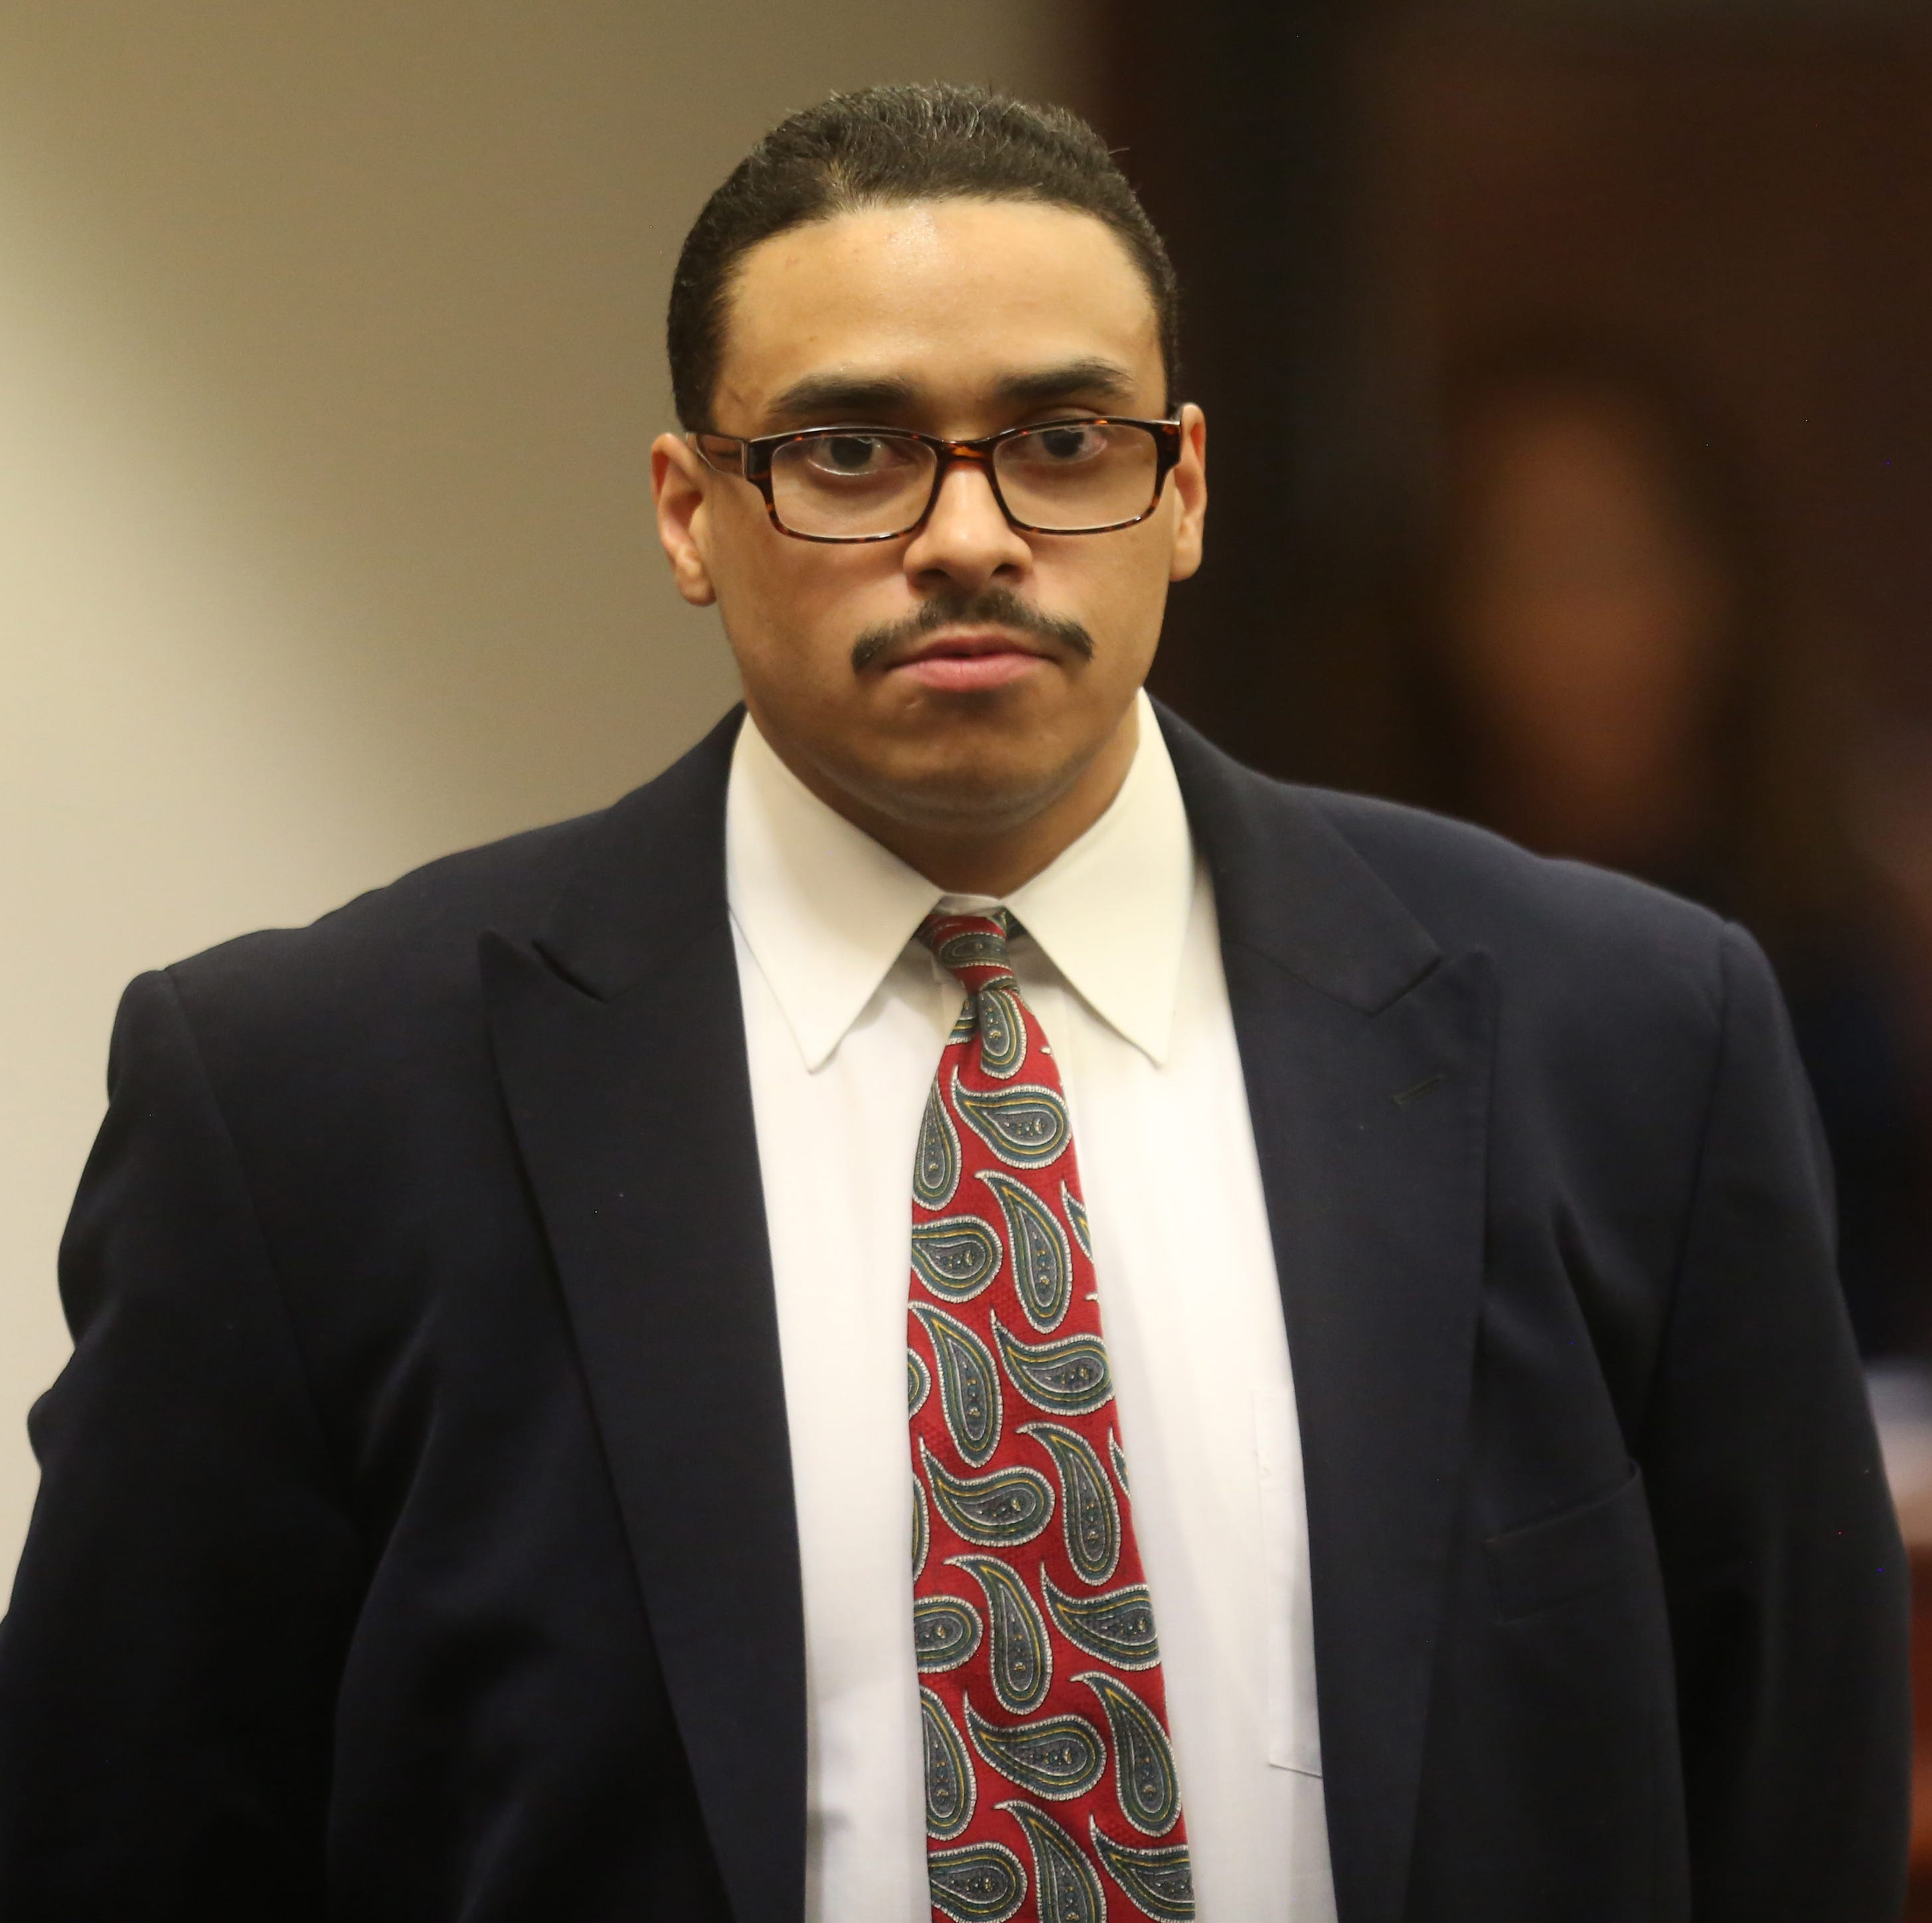 Jurors brought to tears as trial in Palm Springs cop-killing case begins